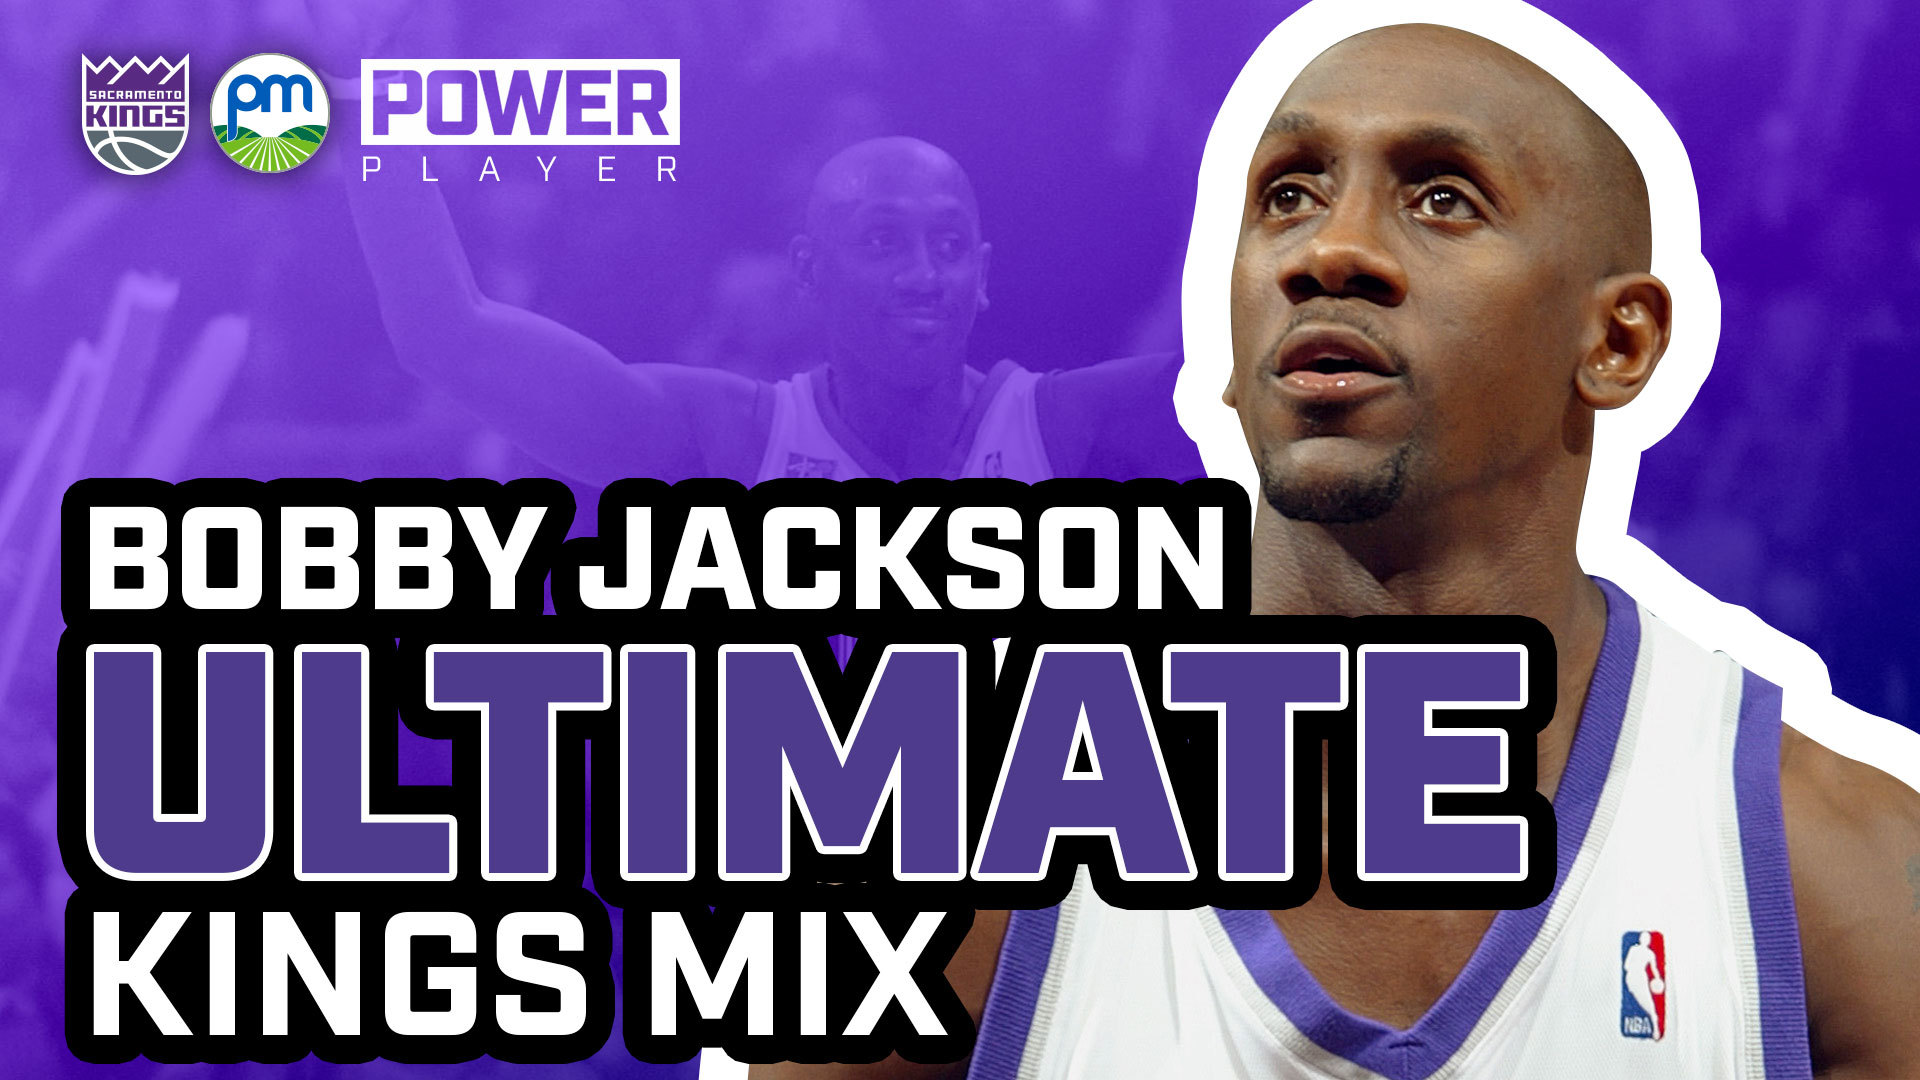 BOBBY JACKSON ULTIMATE KINGS MIX | Power Market Power Player